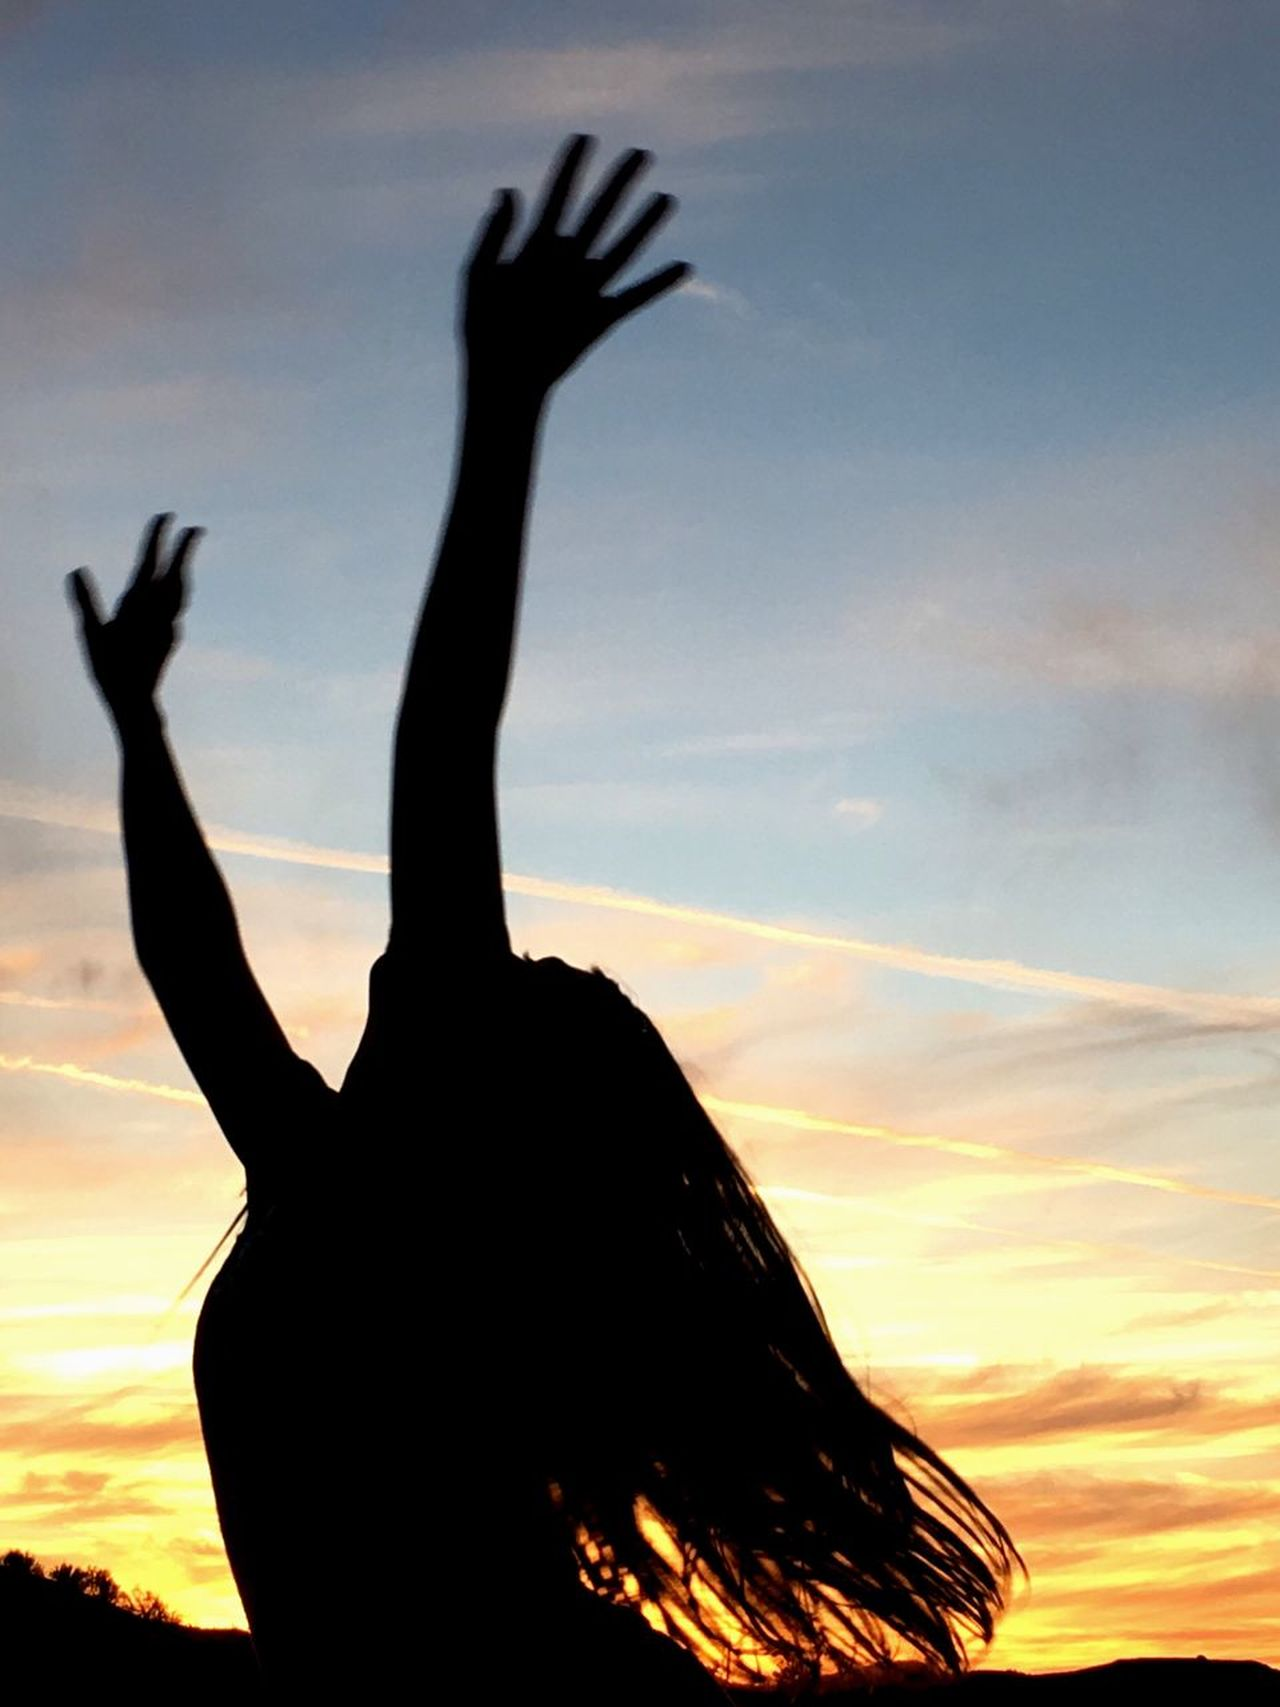 Silhouette Arms Raised Sunset Sky Leisure Activity One Person Outdoors Human Arm Human Body Part Real People Close-up Human Hand Day One Woman Only Nature Young Adult People Freestyle Low Angle View Tranquil Scene Tranquility Be Yourself ExpressYourself Just Dance Sunset Dancing